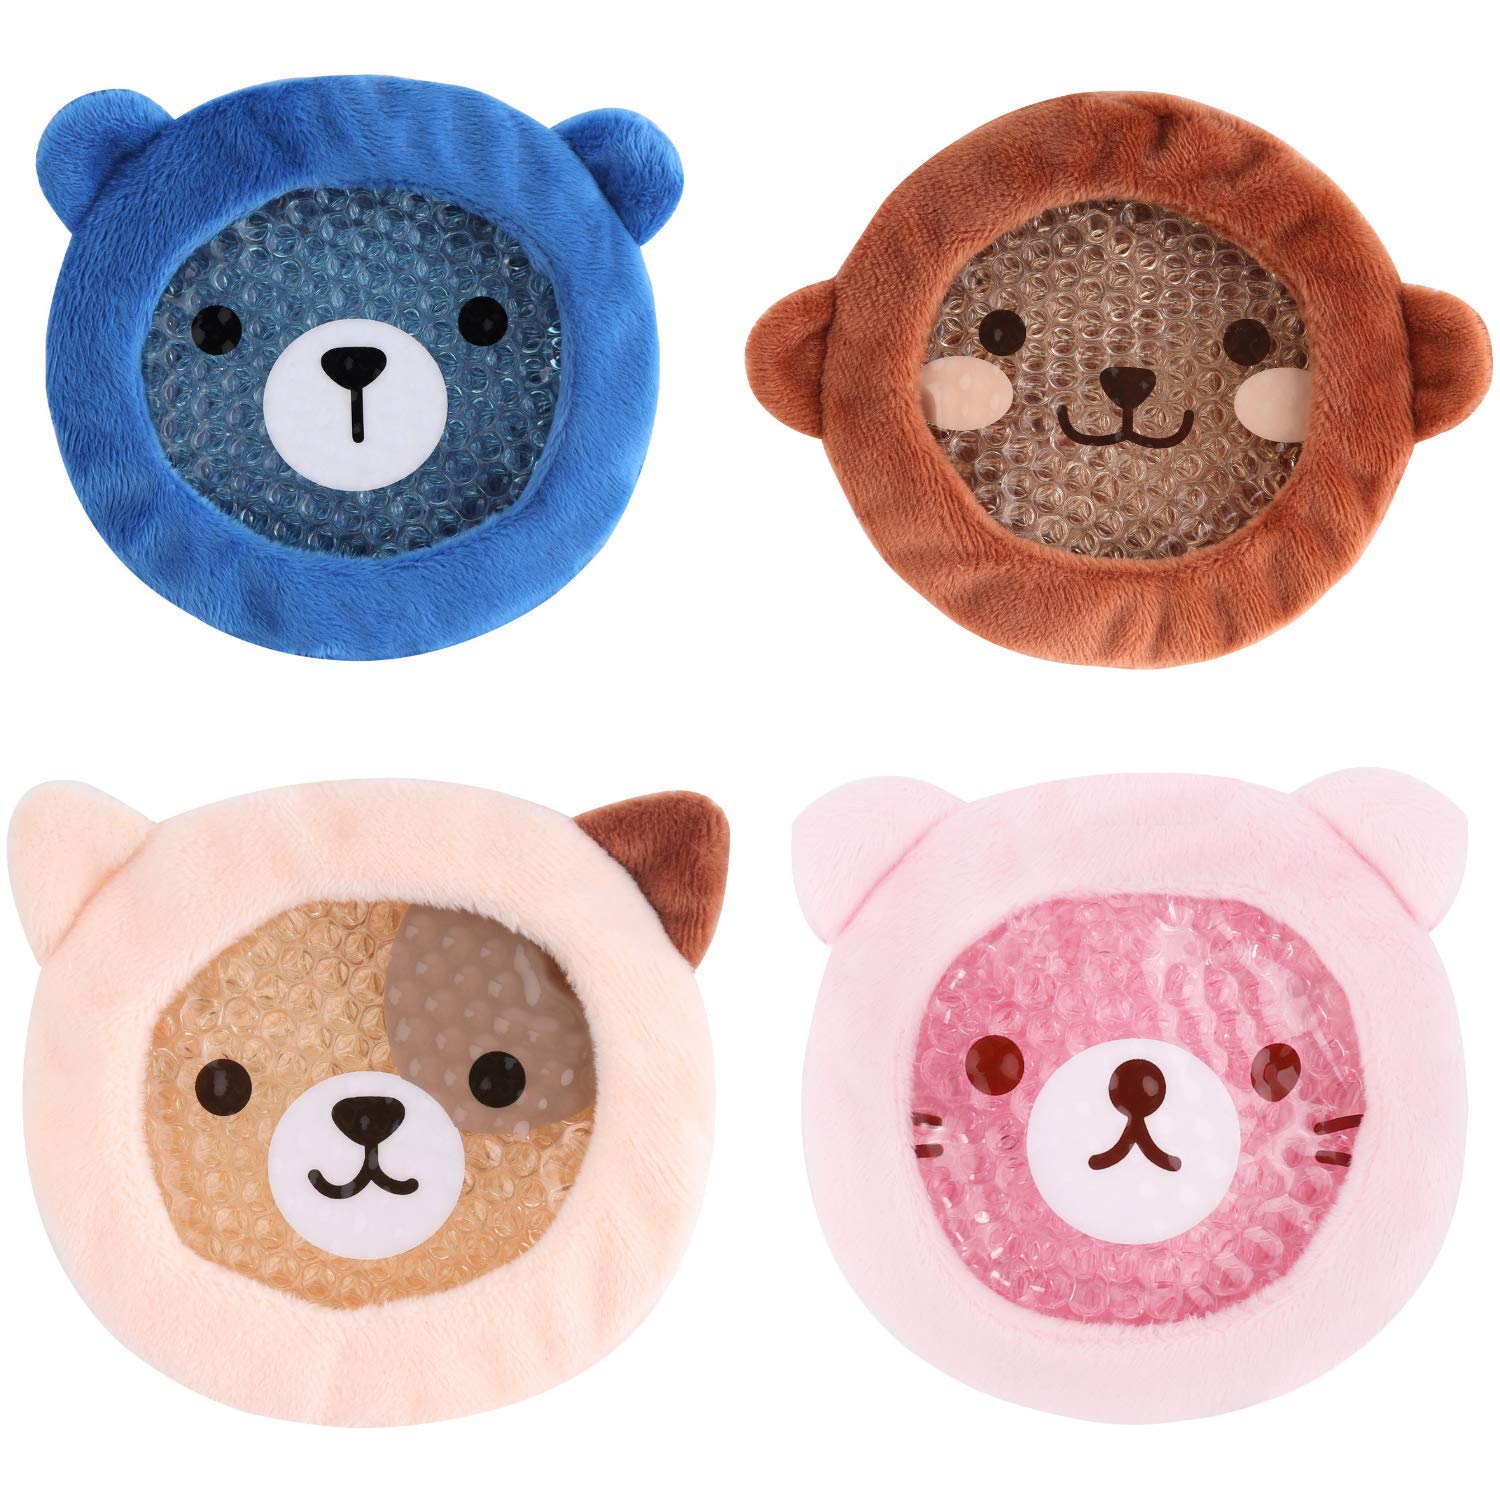 FOMI Premium Kids Hot Cold Ice Packs | 4 Pack | Soft Colorful Sleeves | Fun Animal Designed Children Gel Bead Wrap | Pain Relief for Kids Boo Boos, Fever, Wisdom Teeth, Tired Eyes, Headaches by FOMI